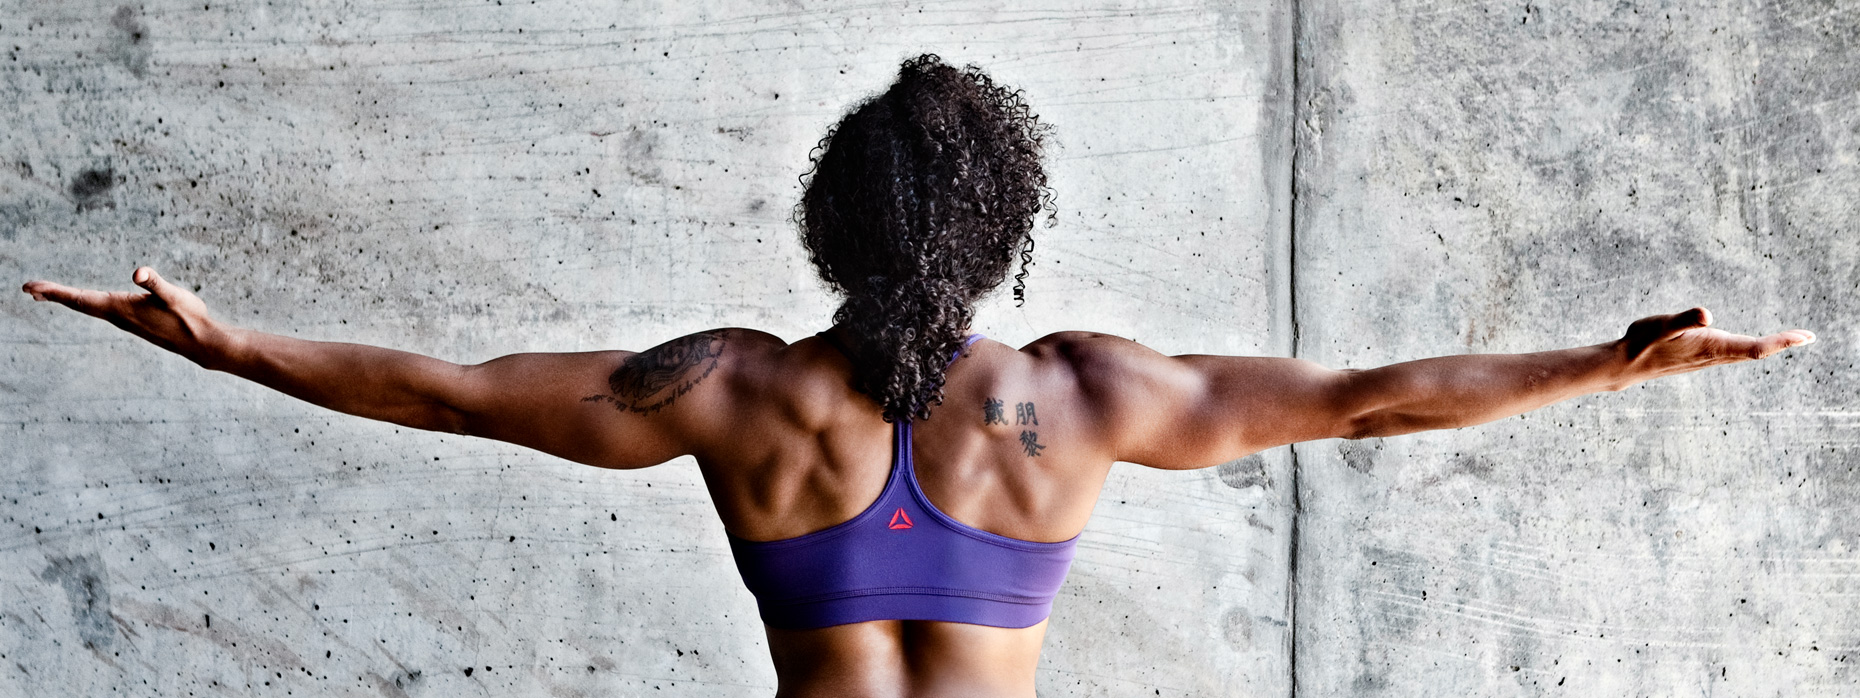 Los Angeles Sports Photography, Michael Brian, female,  Elisabeth Akinwale, Reebok Crossfit Games athlete, out stretched arms, back muscles